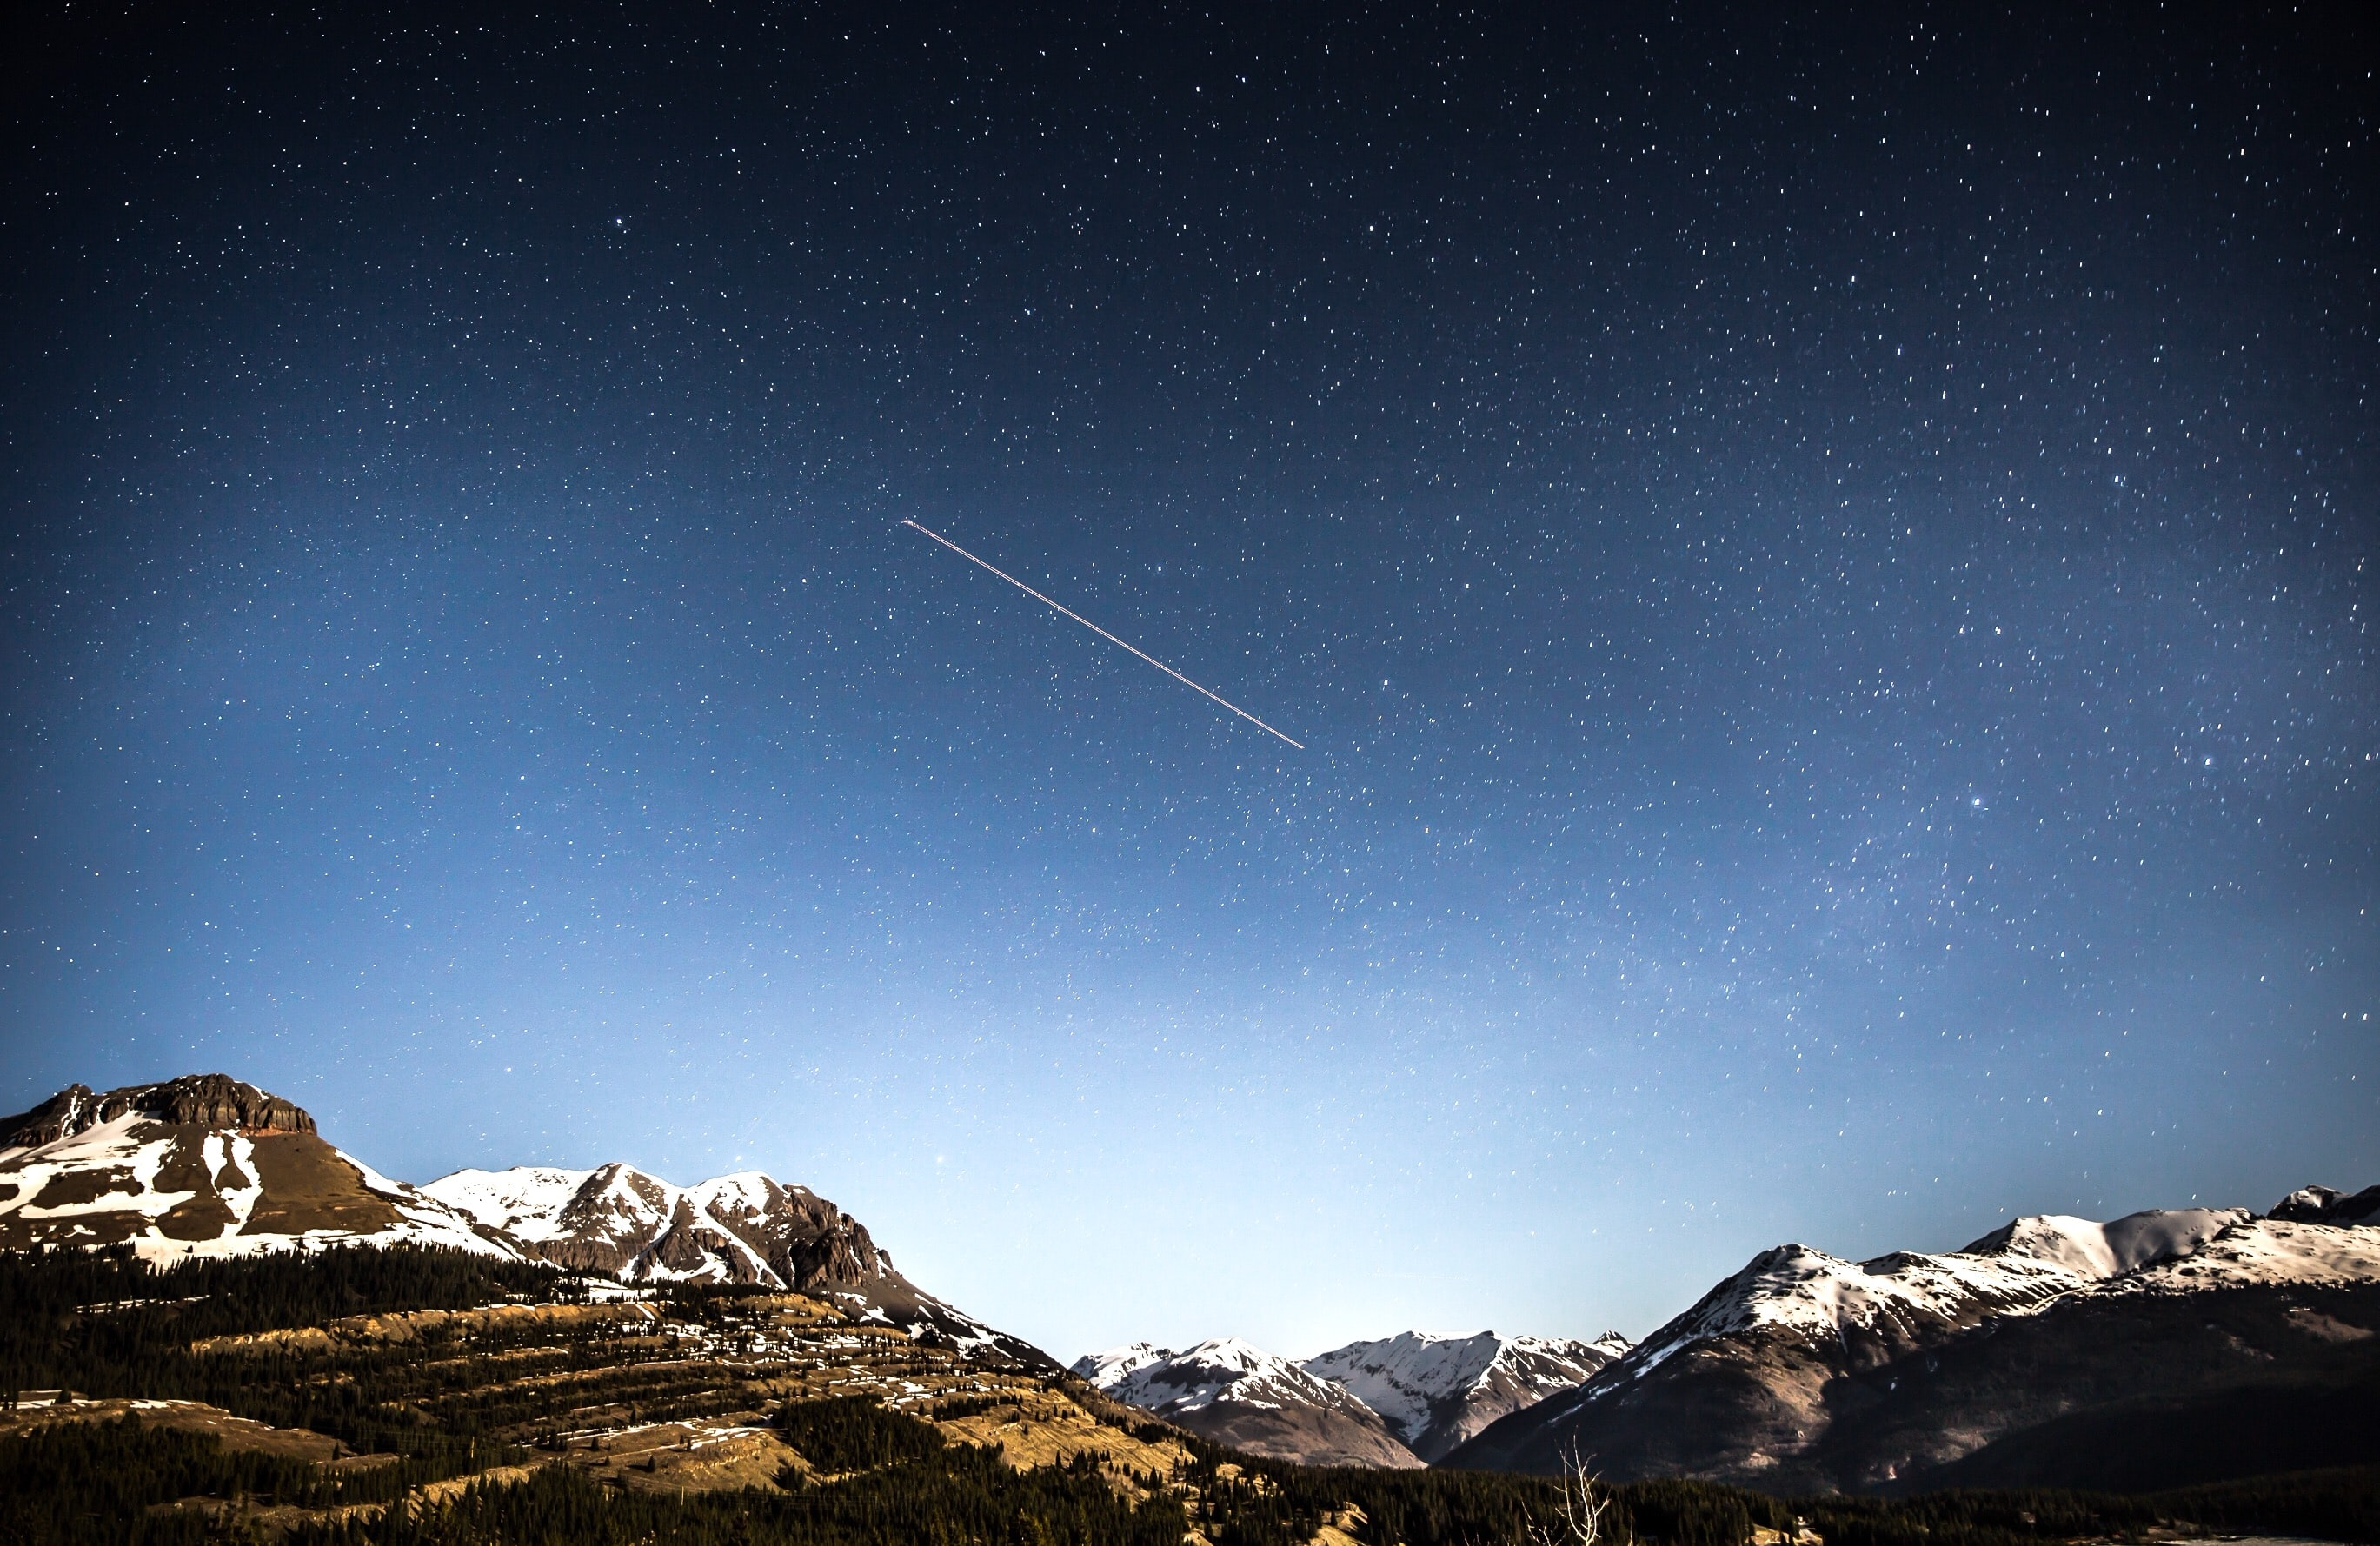 photo of shooting star over snow covered mountains